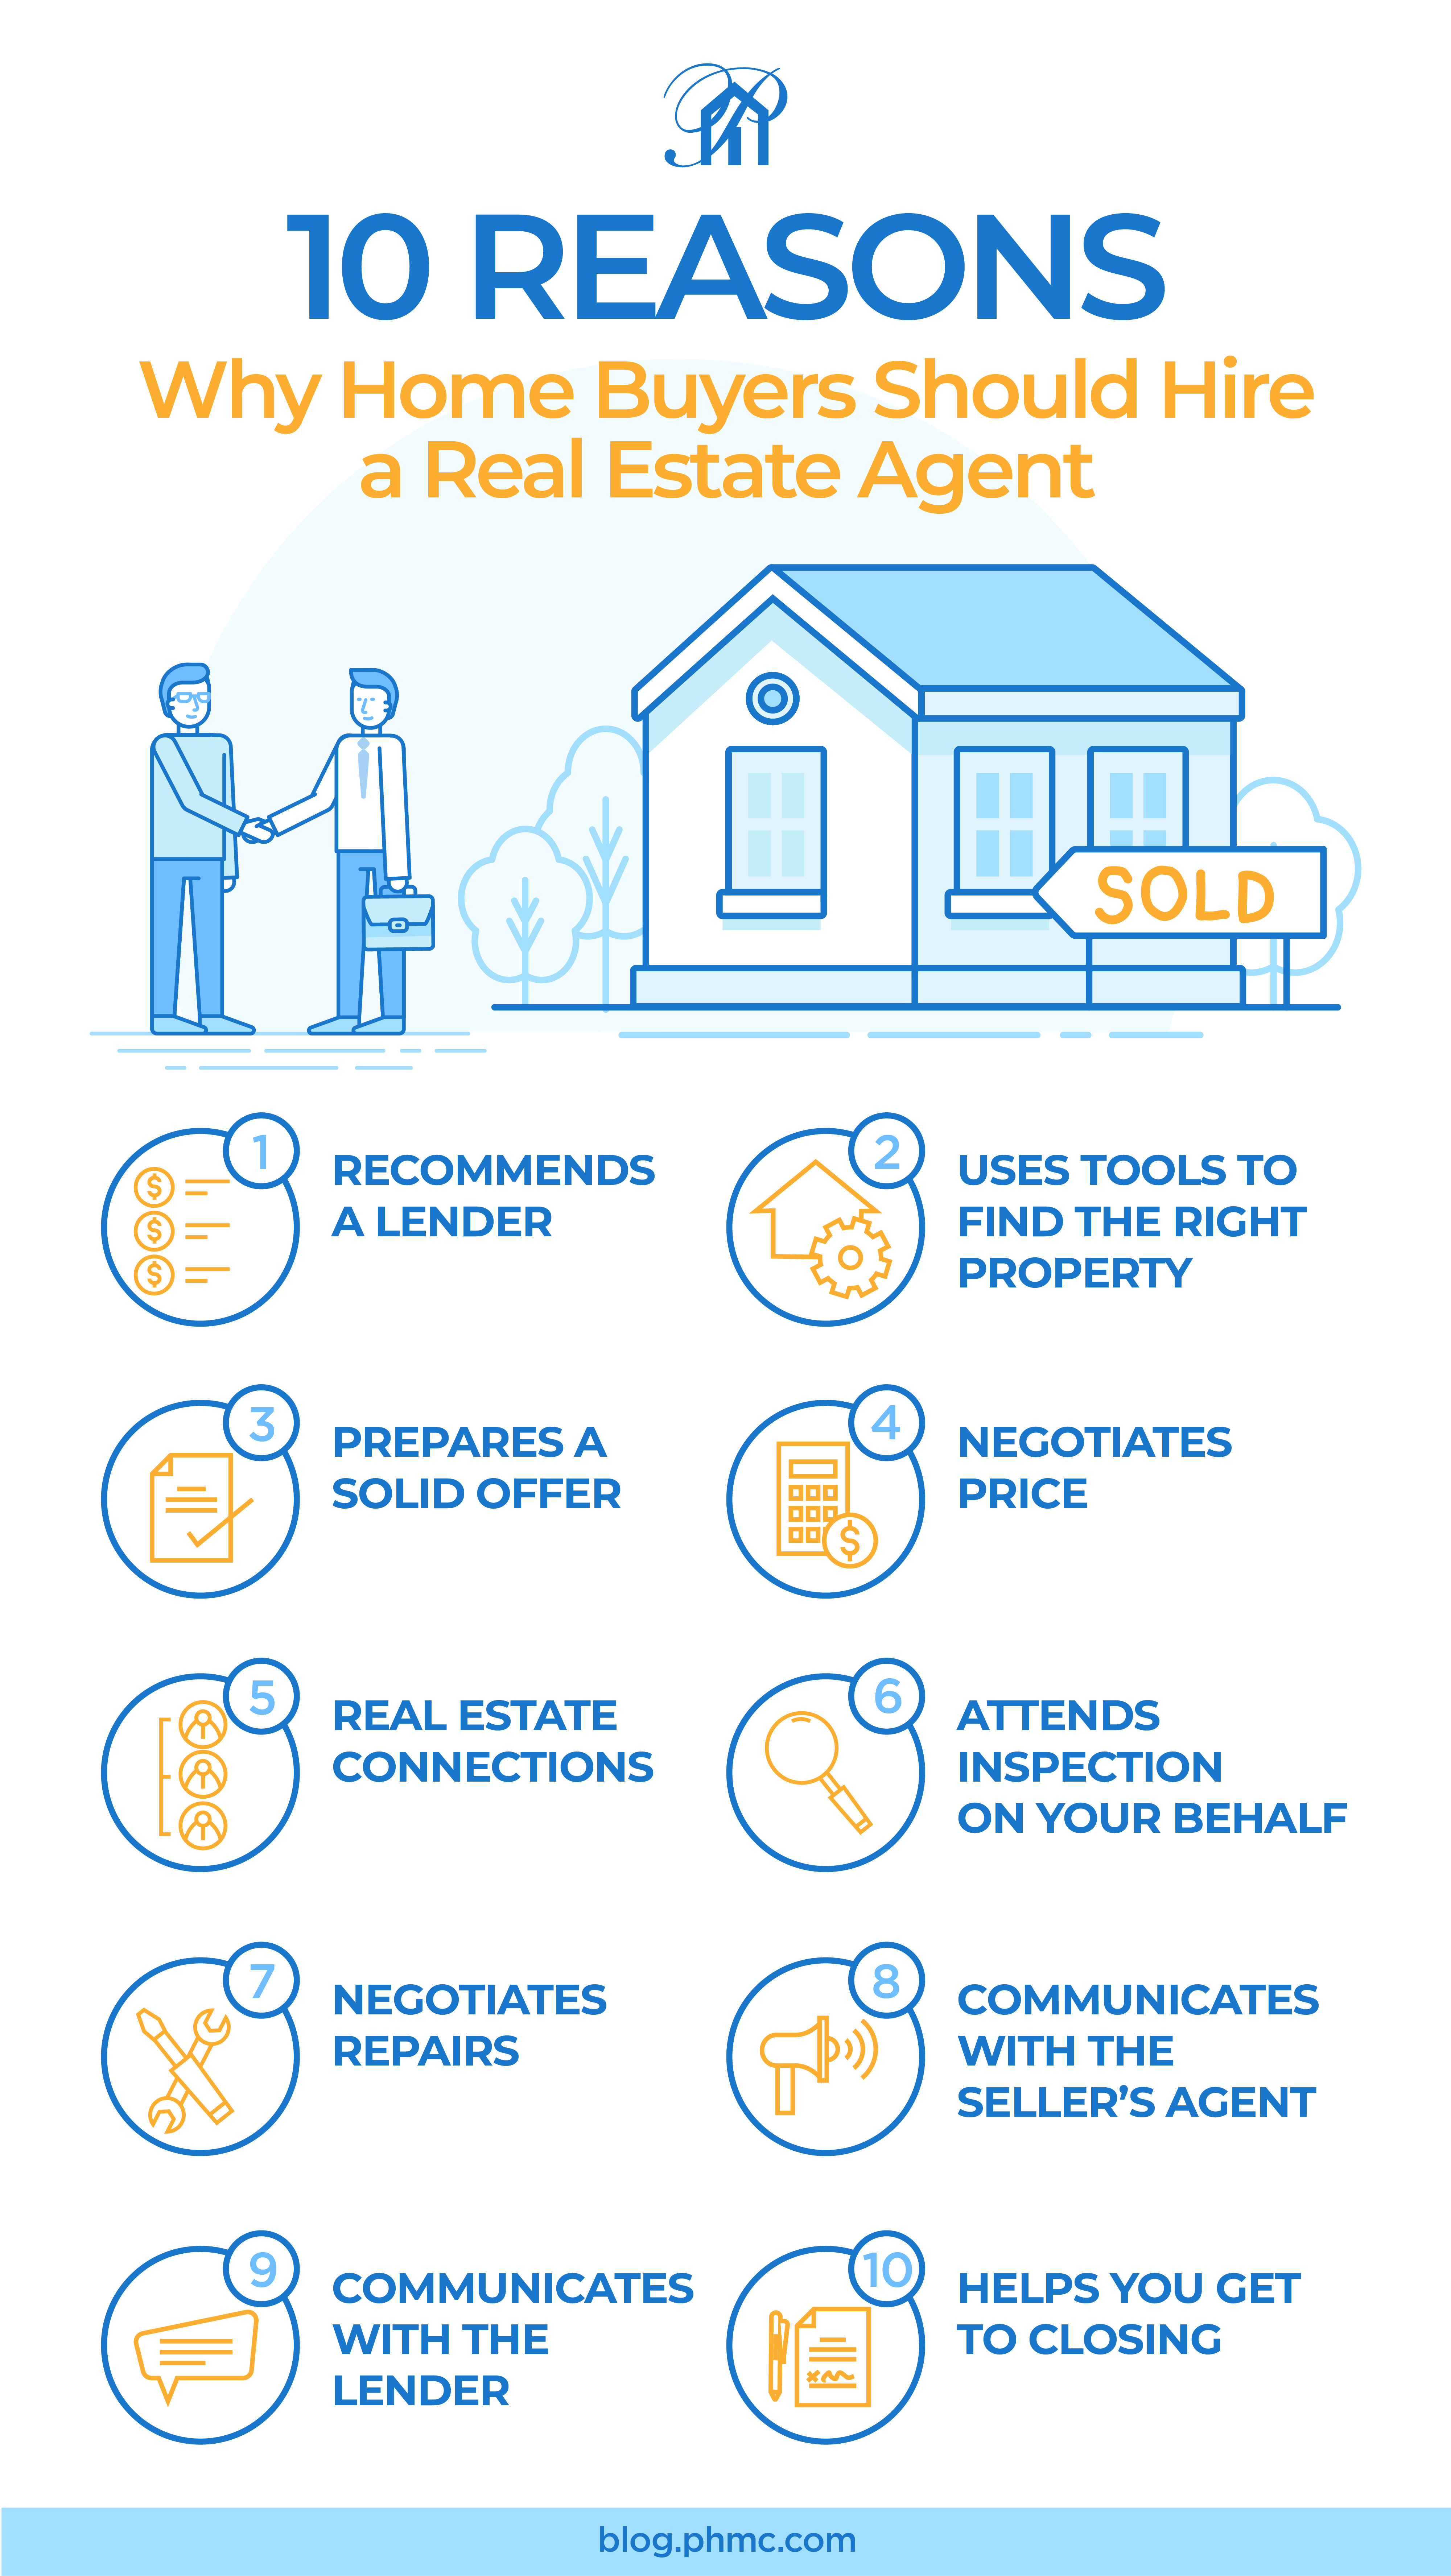 . Recommends a lender 2. Uses tools to find the right property 3. Prepares a solid offer 4. Negotiates price 5. Real estate connections 6. Attends inspection on your behalf 7. Negotiates repairs 8. Communicates with the seller's agent 9. Communicates with the lender 10. Helps you get to closing